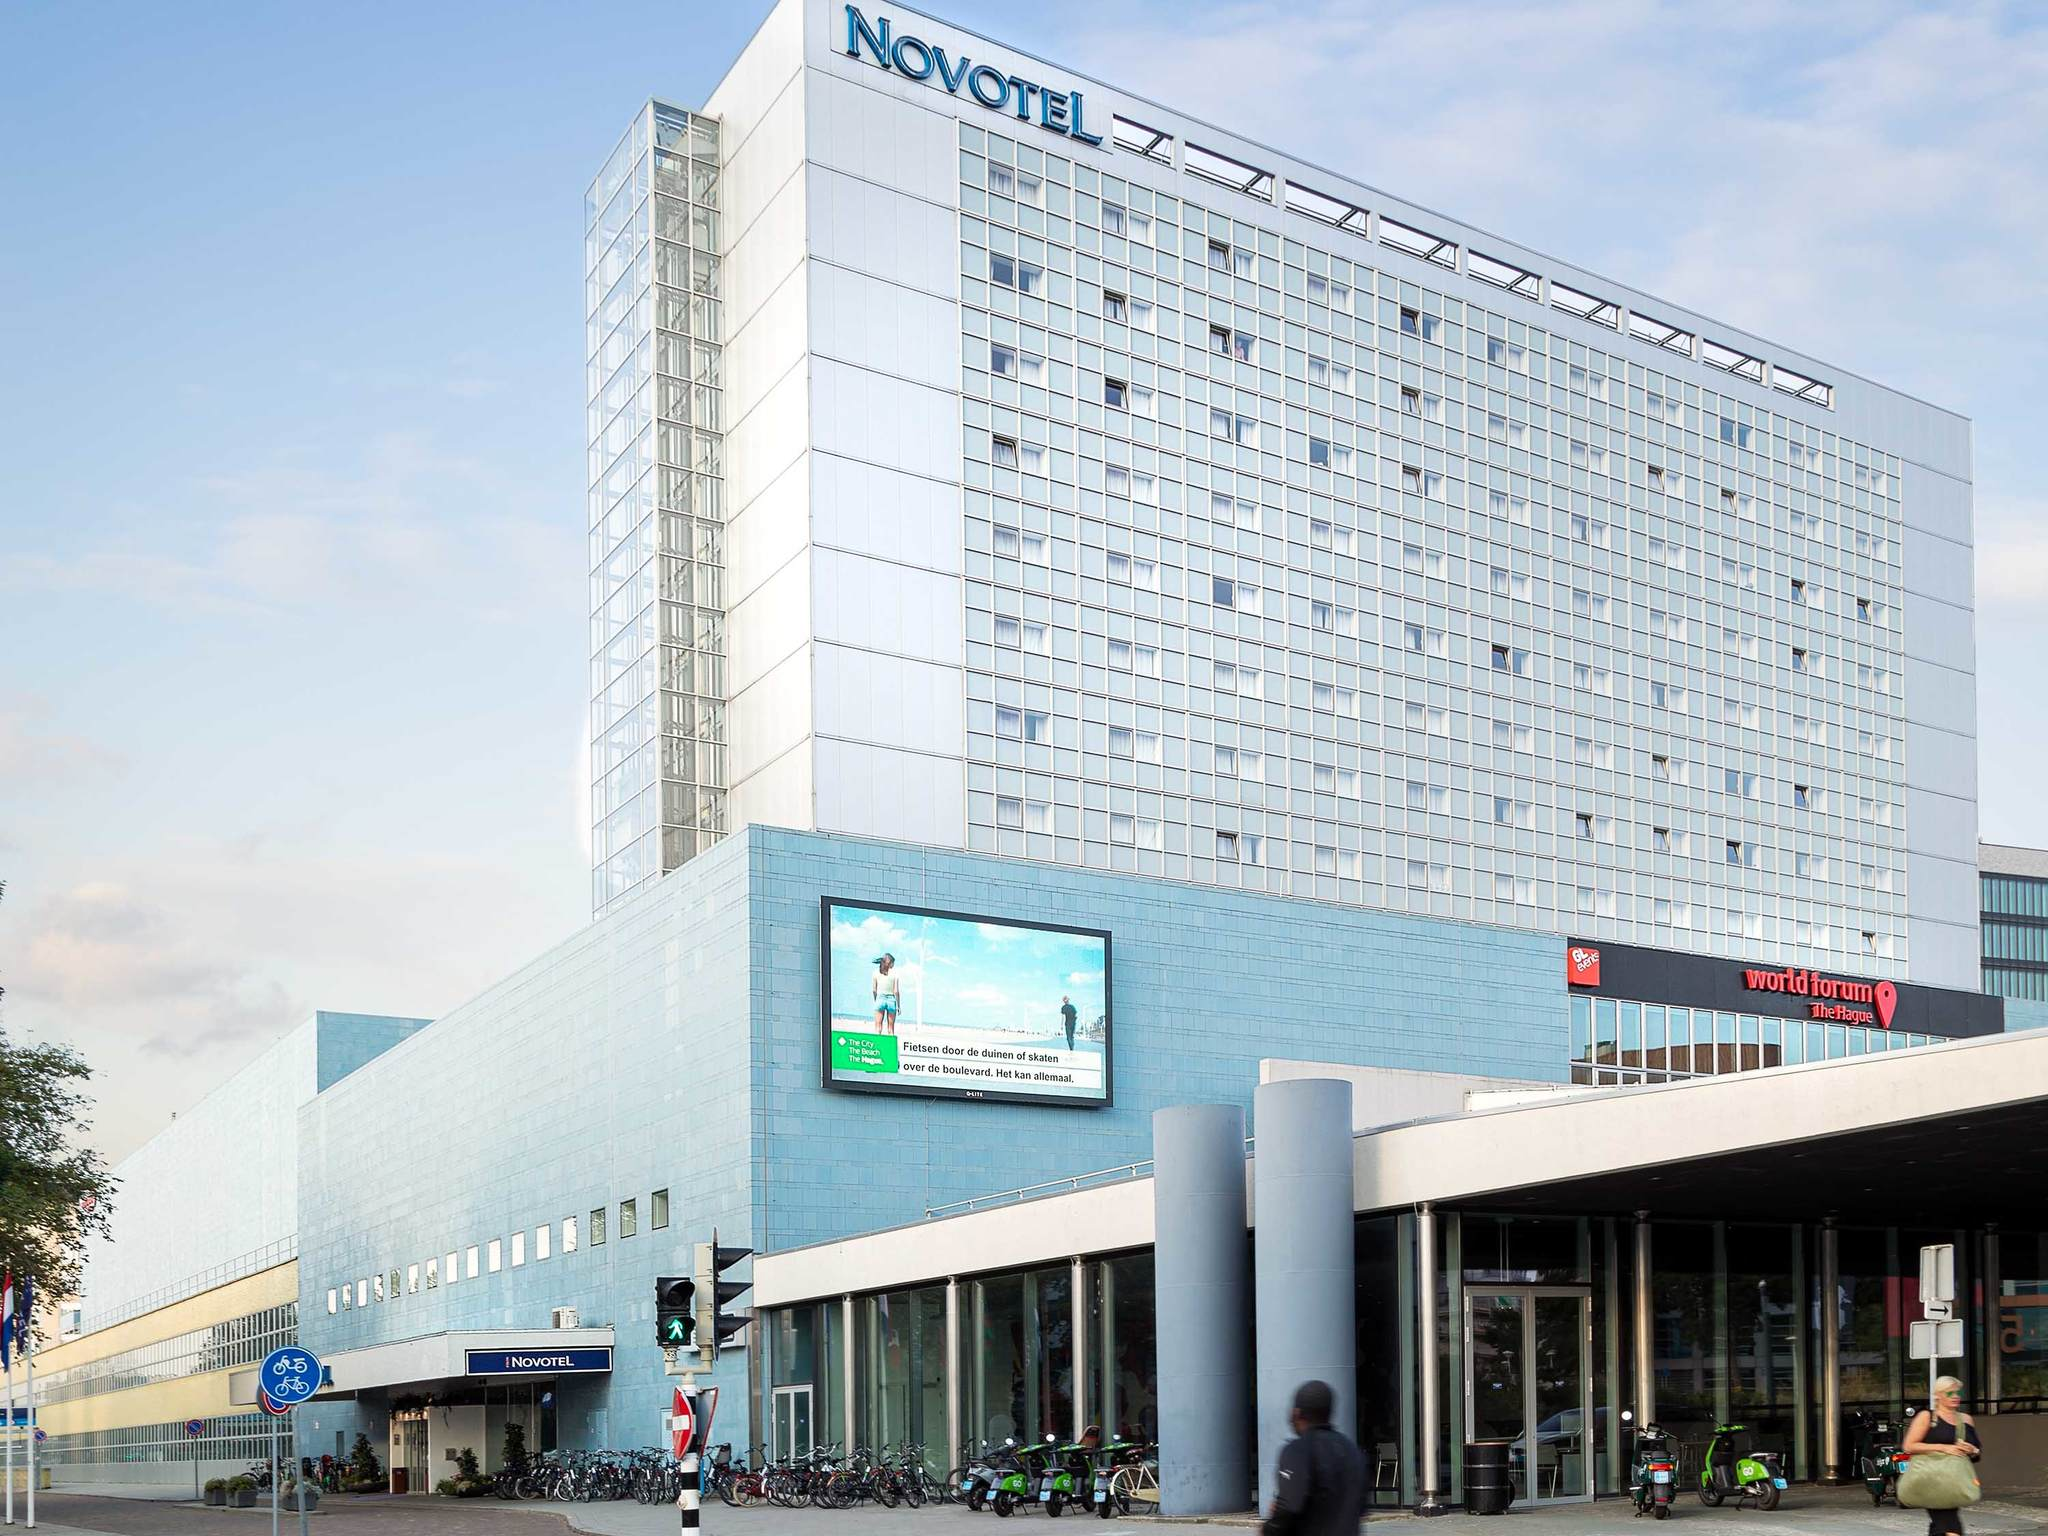 Hotel – Novotel Den Haag World Forum